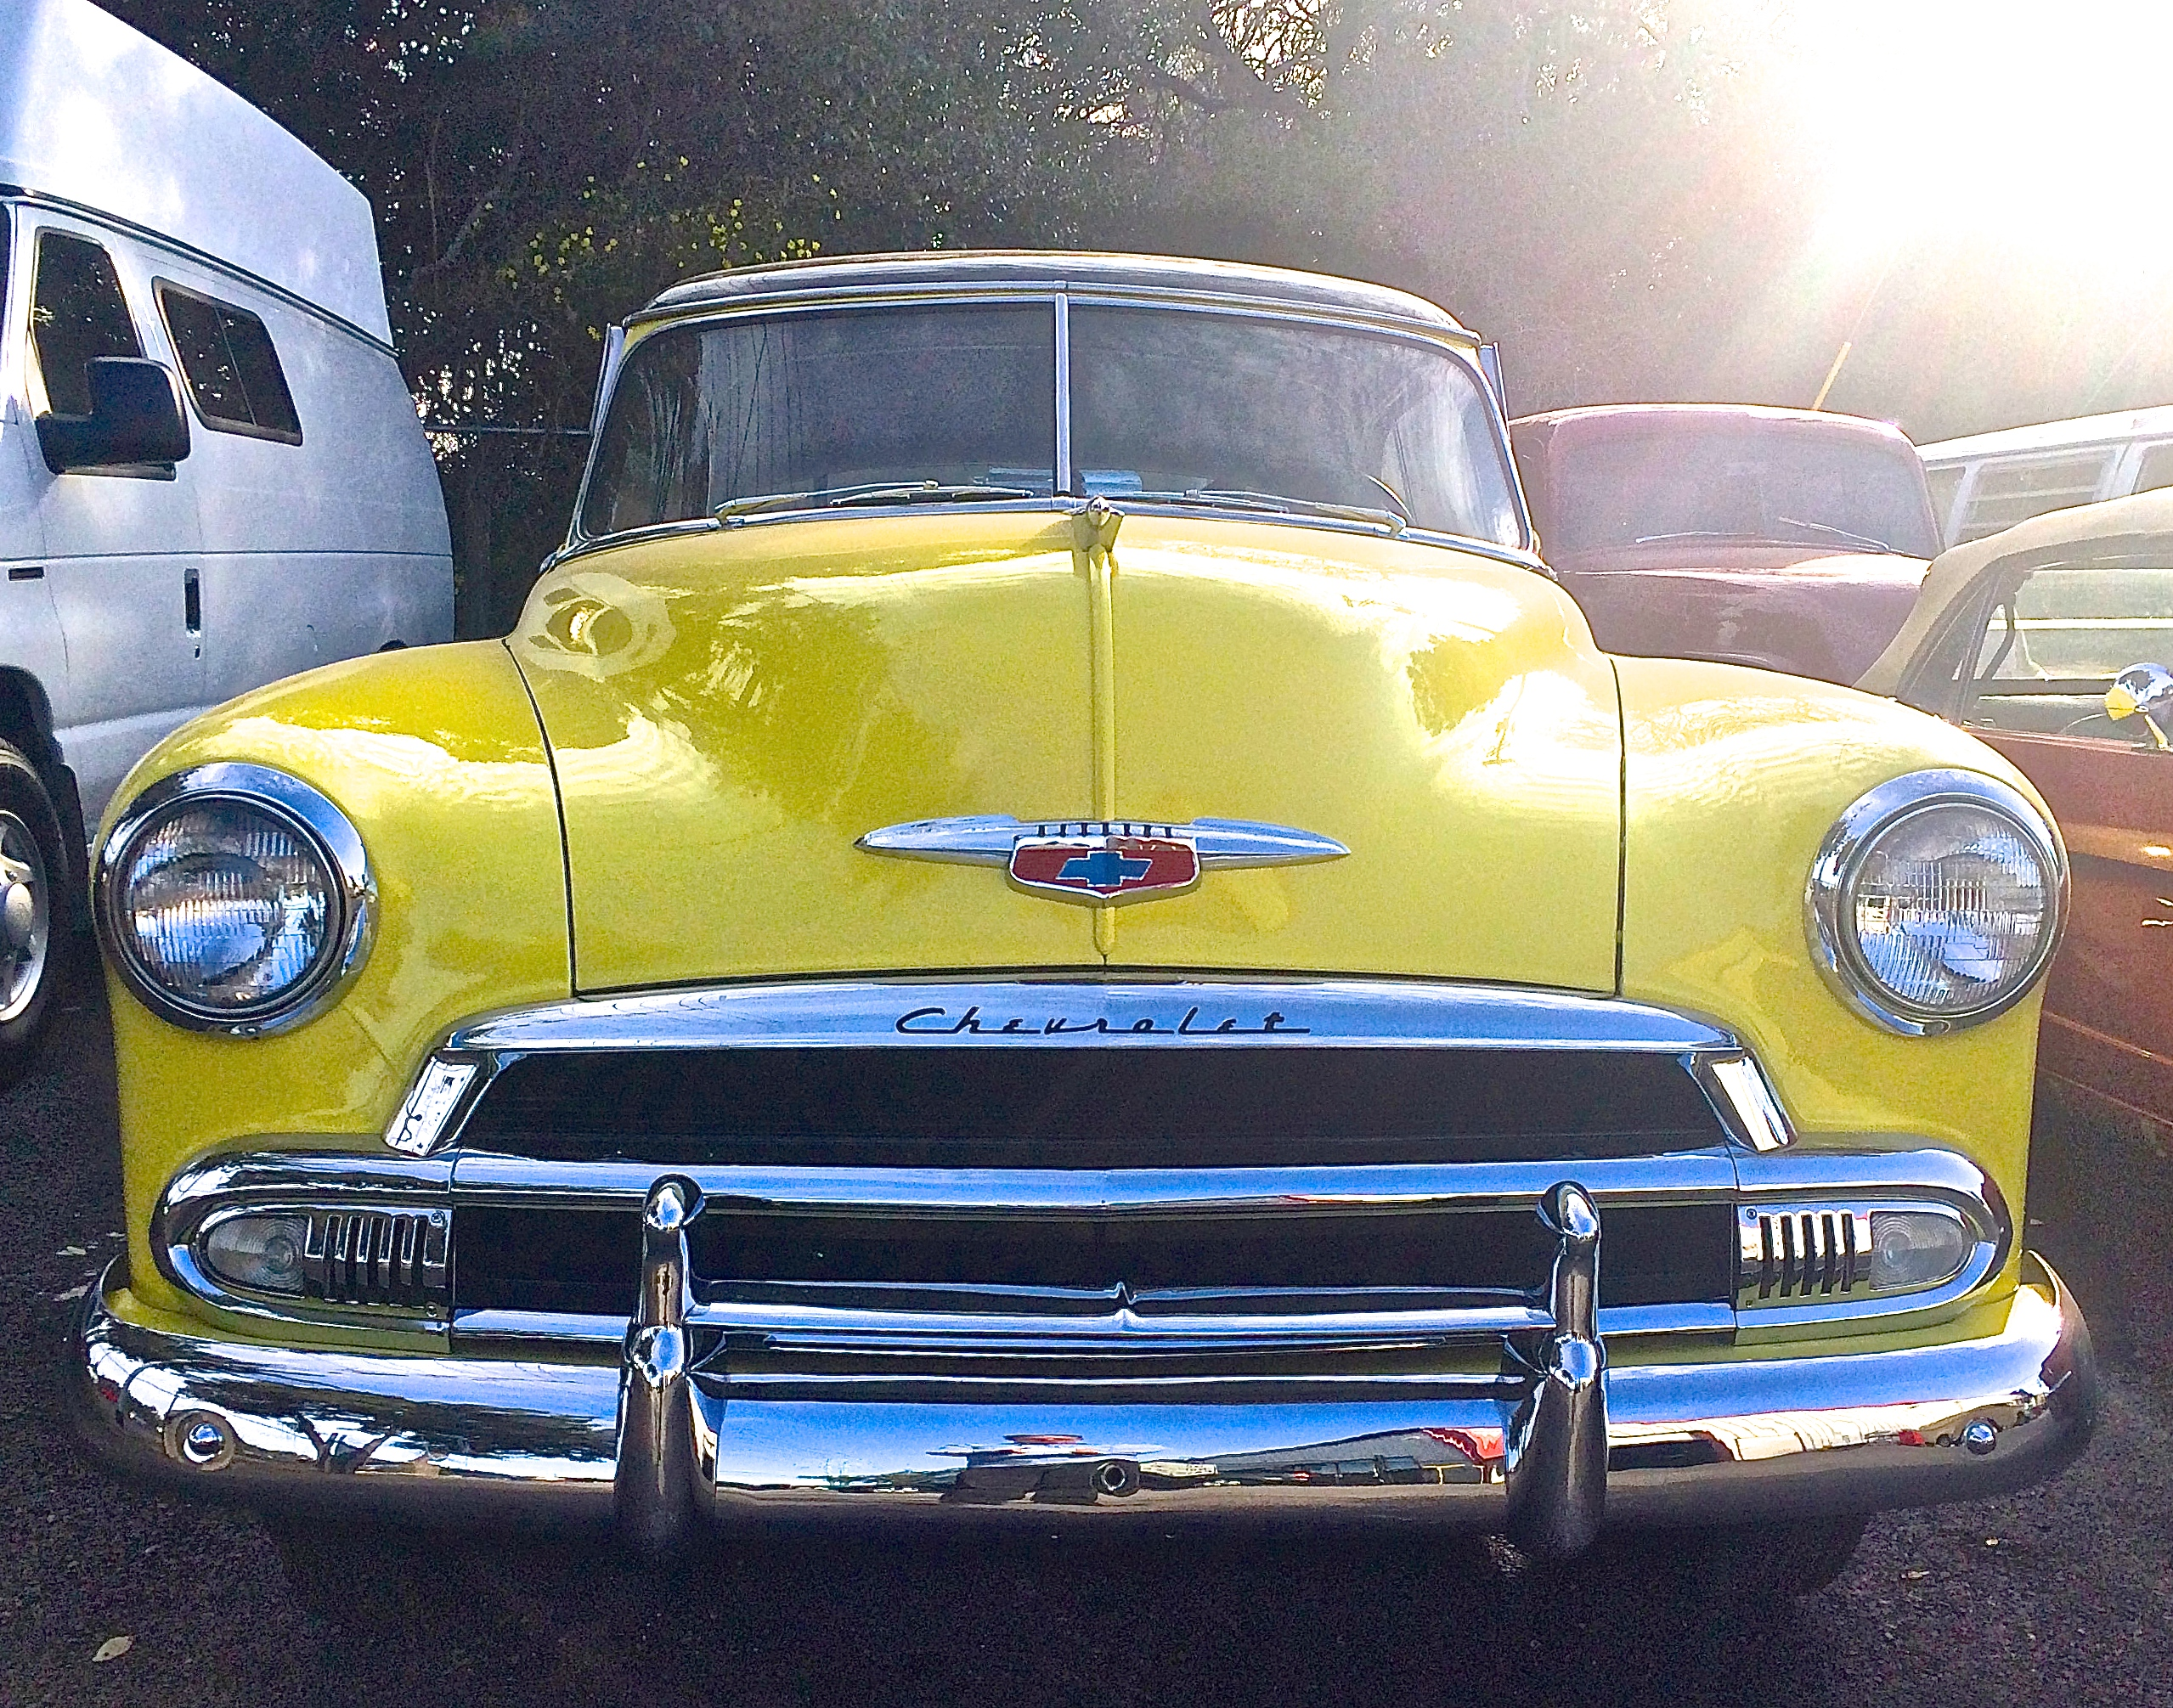 share emblem austin front cedar park early real window new truck on in chevrolet tx pictures tumblr click opens car atx to